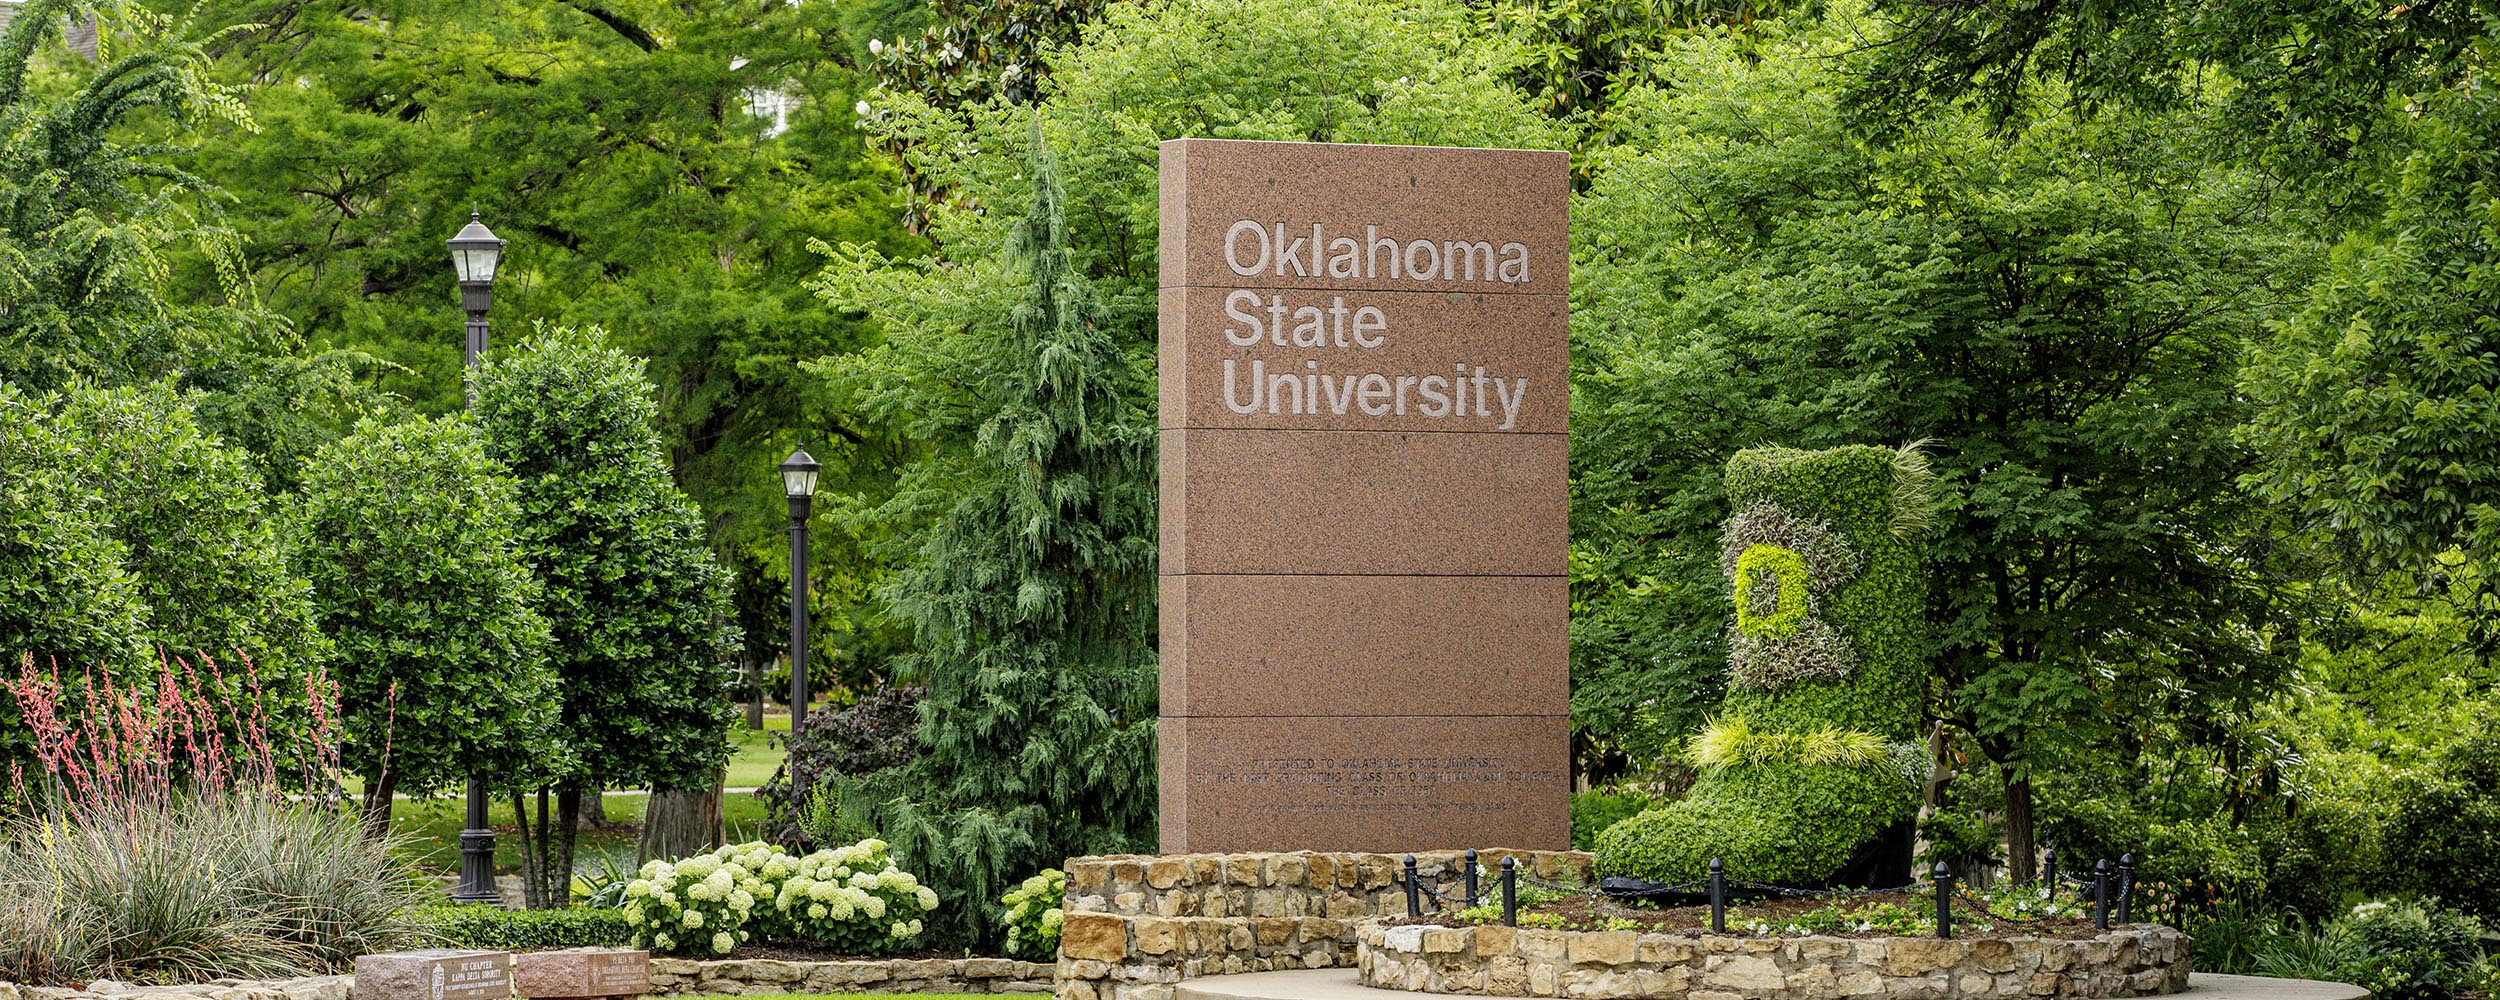 OSU/A&M Regents approve $1.5 billion 2022 budget for Oklahoma State University and the OSU System